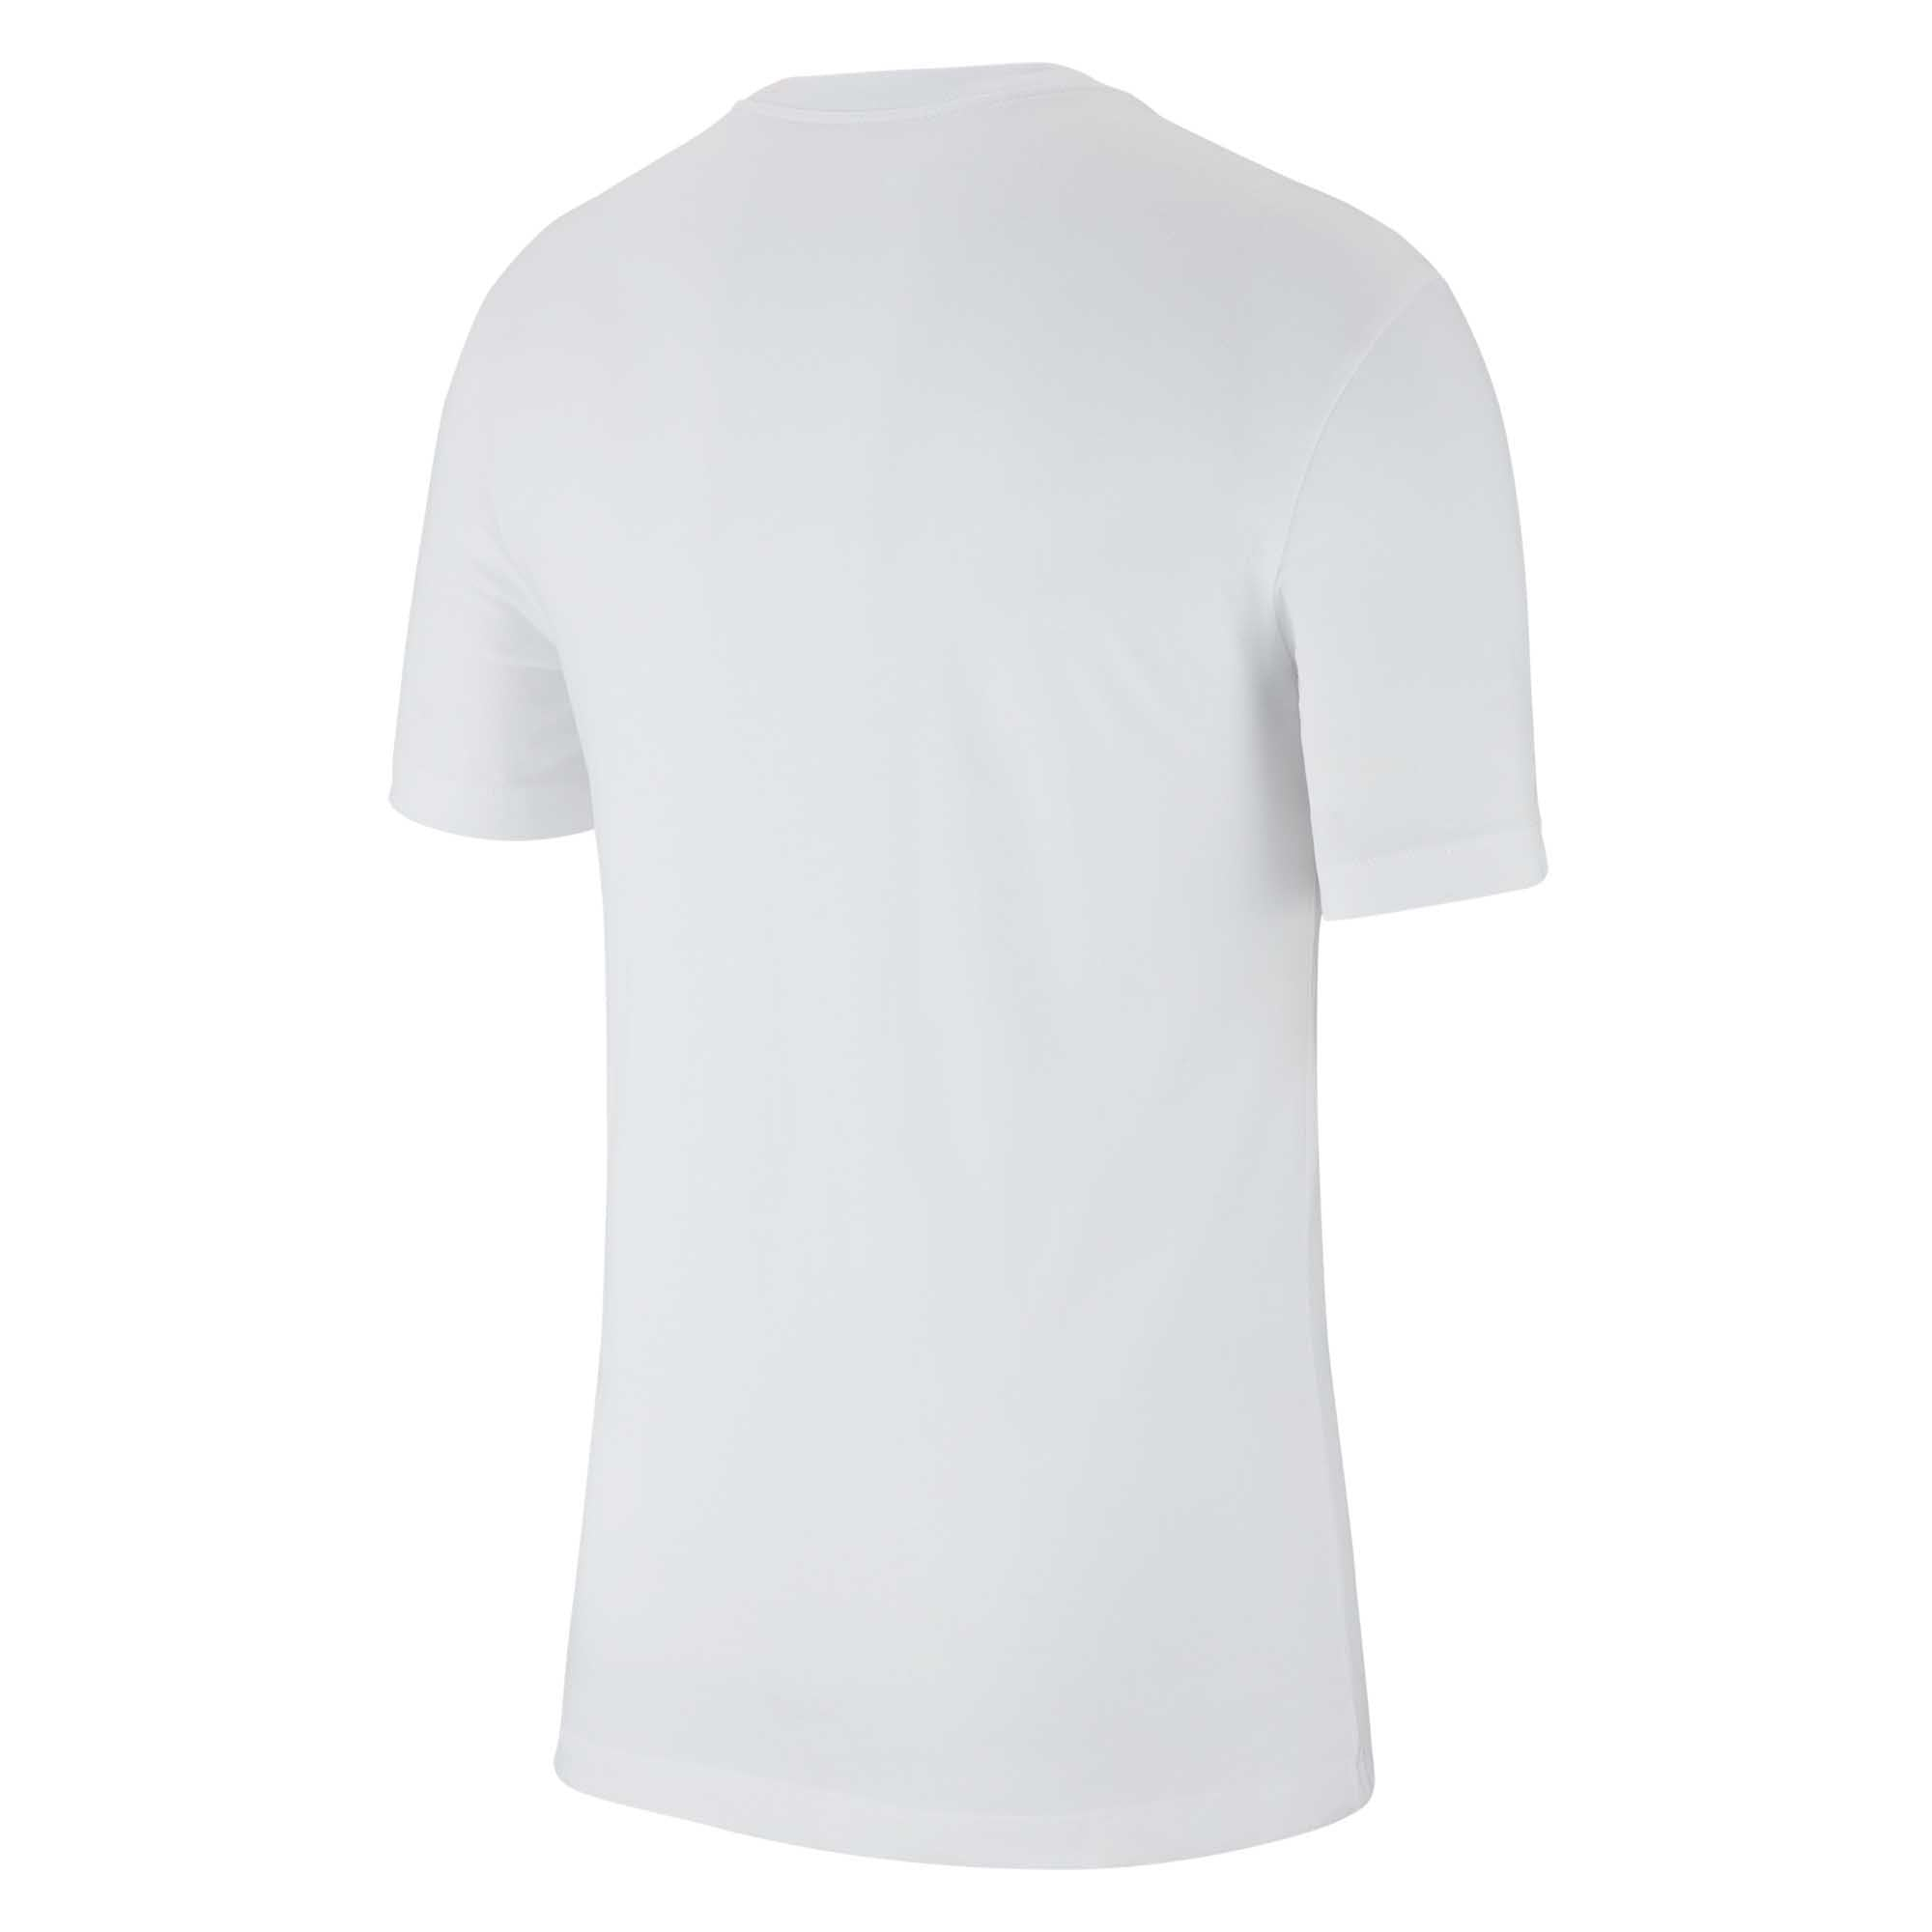 32f91b94 Buy Nike Men Court Heritage Logo Tee Online in Singapore | Royal ...